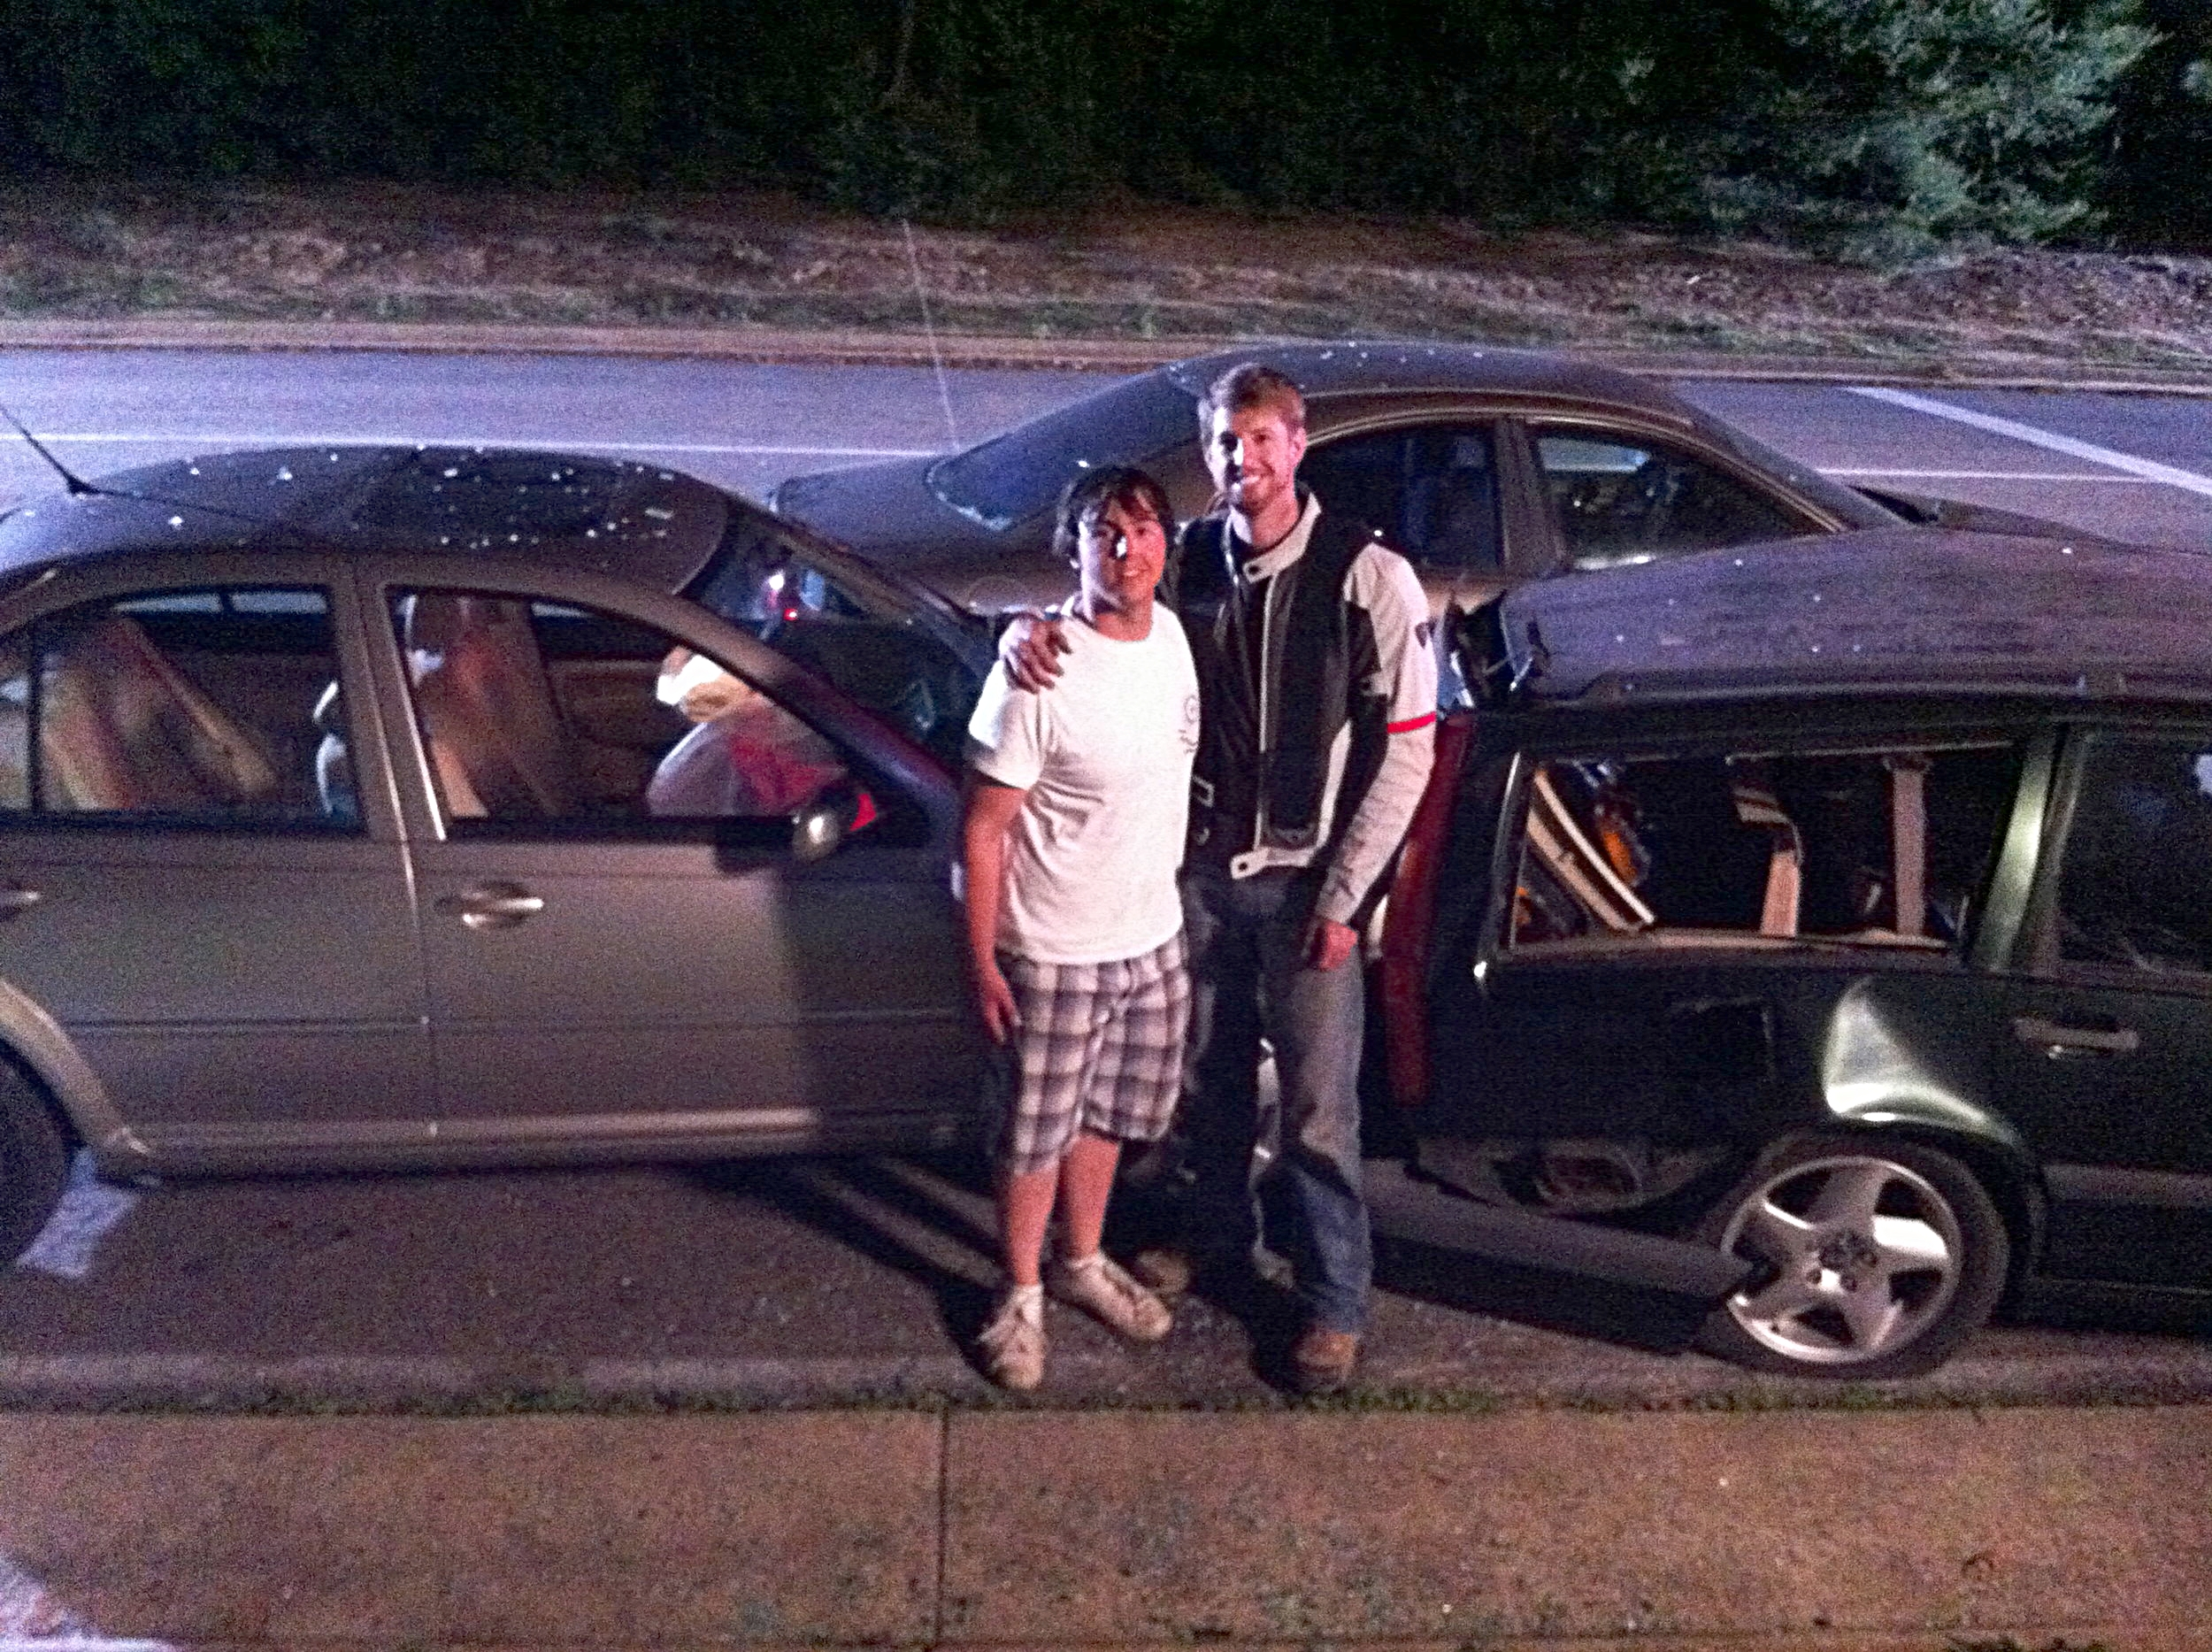 Here's a super grainy photo of Morgan and I on set after I smashed a bunch of cars up. Yeah, the iPhone couldn't capture twilight shots in 2011 either.